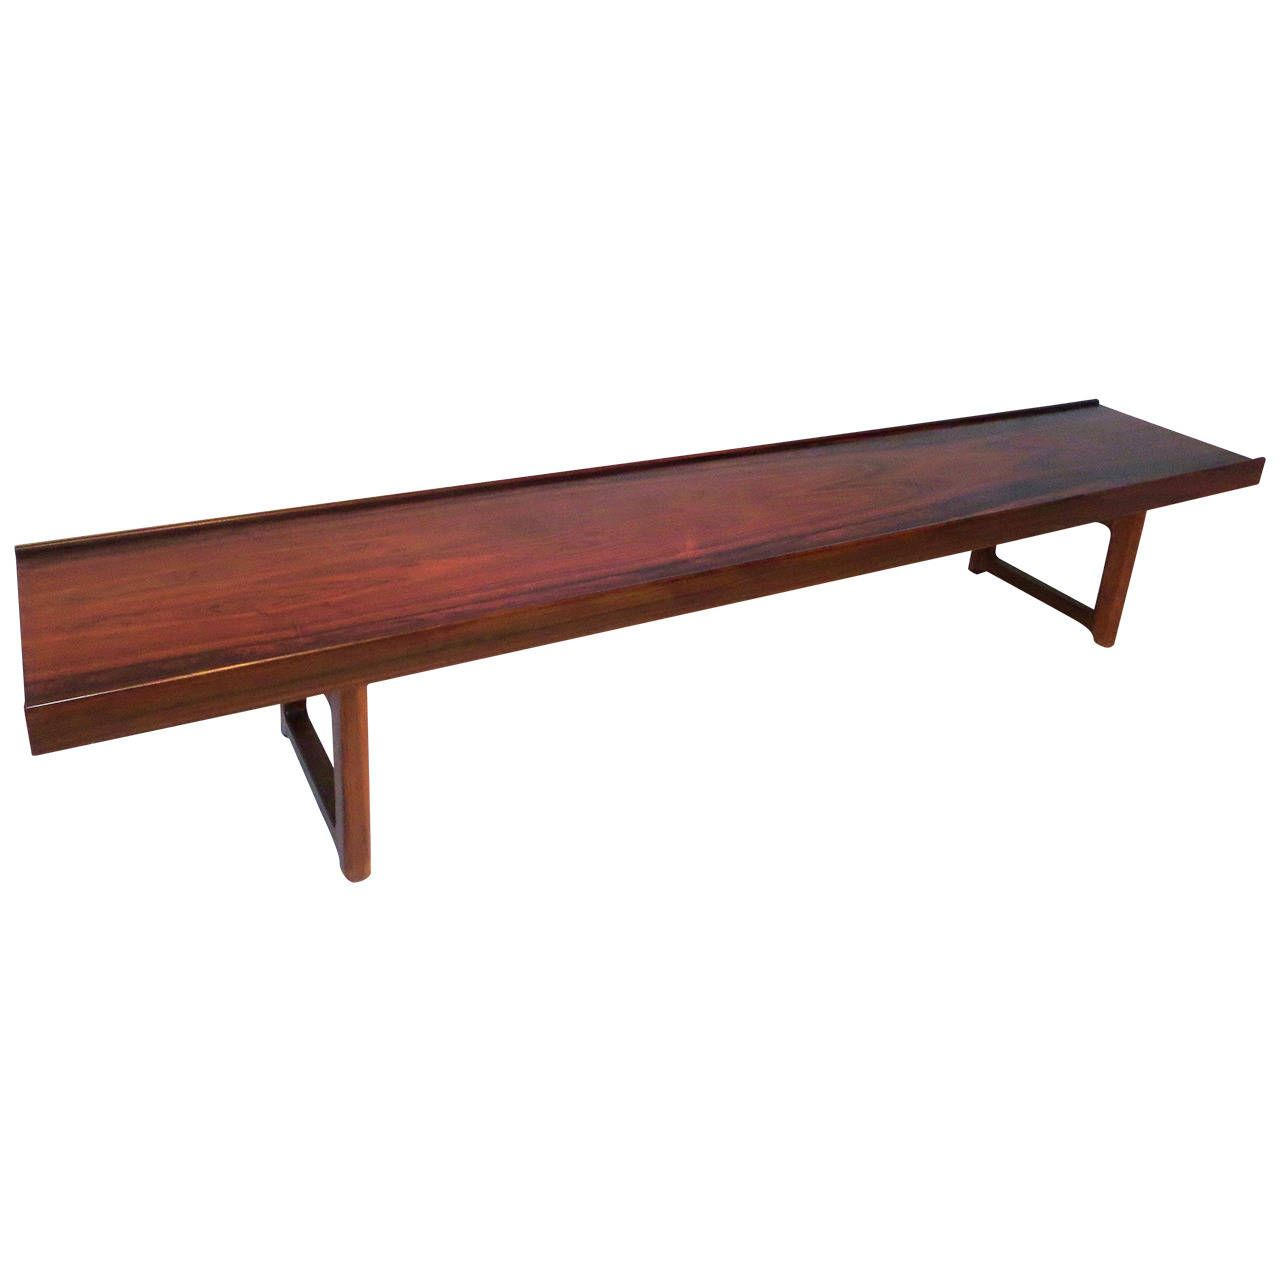 Long Low Profile Bench Or Coffee Table In Rosewood Torbjørn Afdal For  Bruksbo